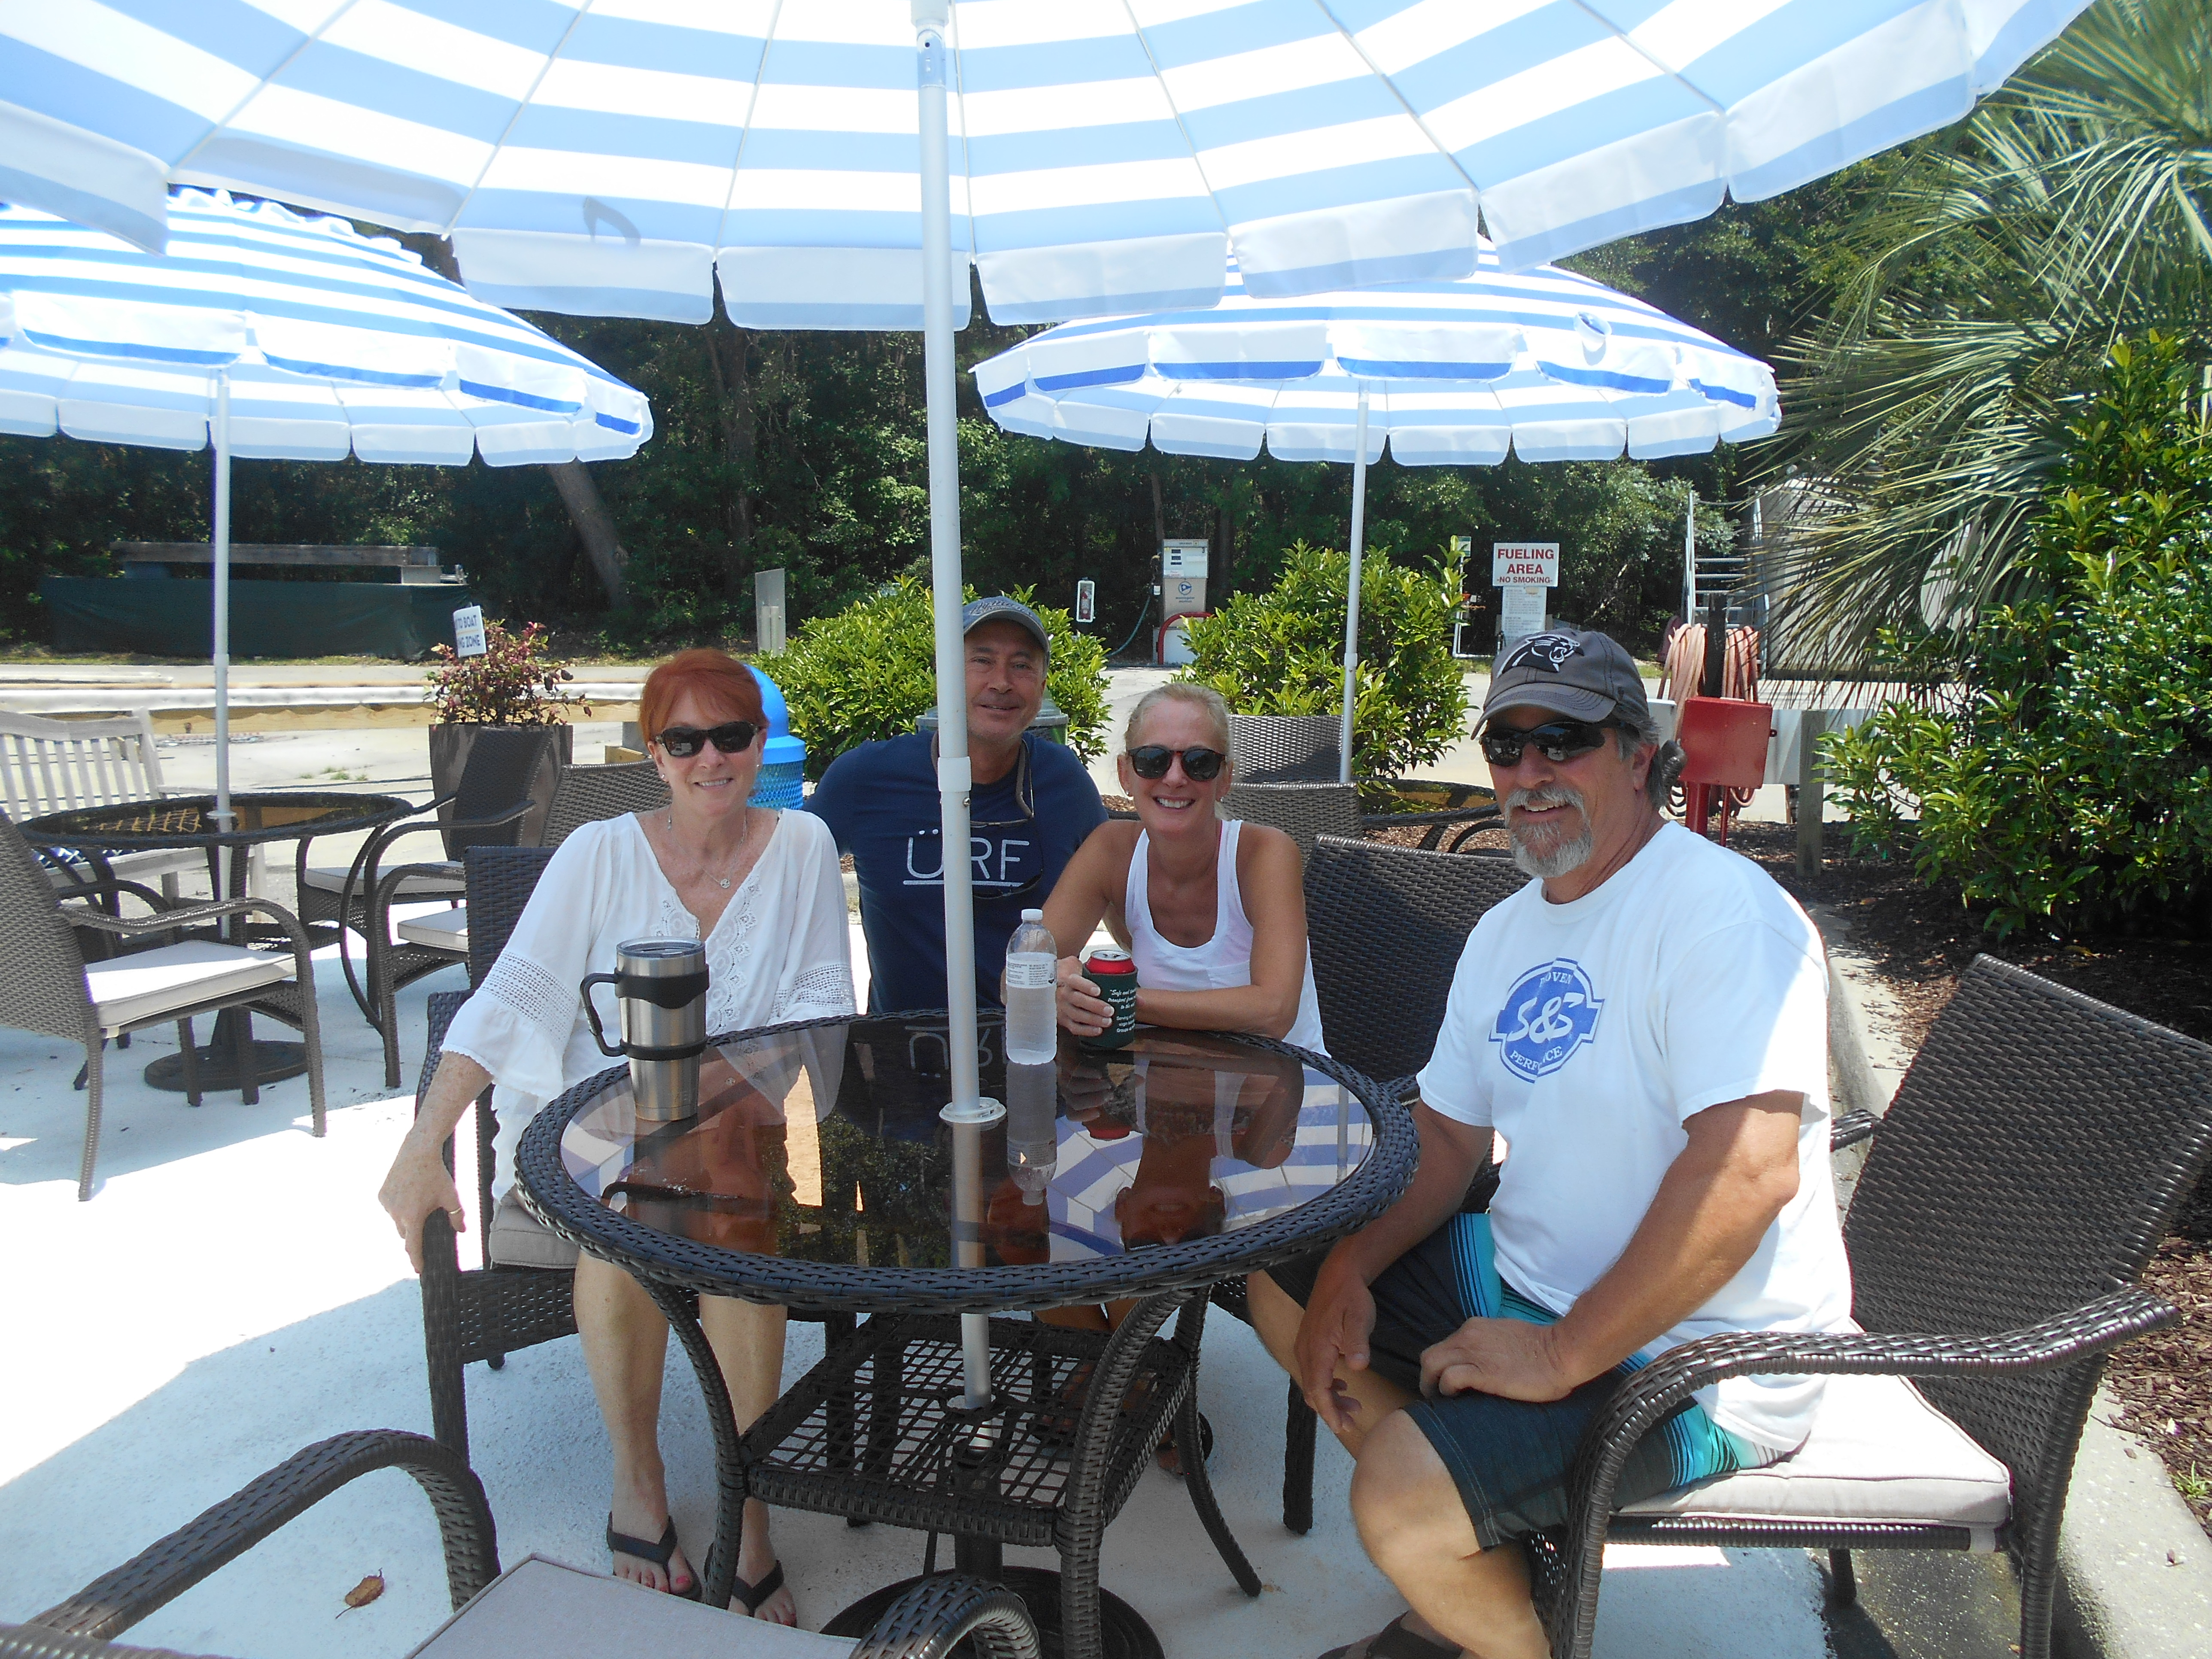 Members at the Curb to Boat patio at Reserve Harbor Yacht Club for July 4th